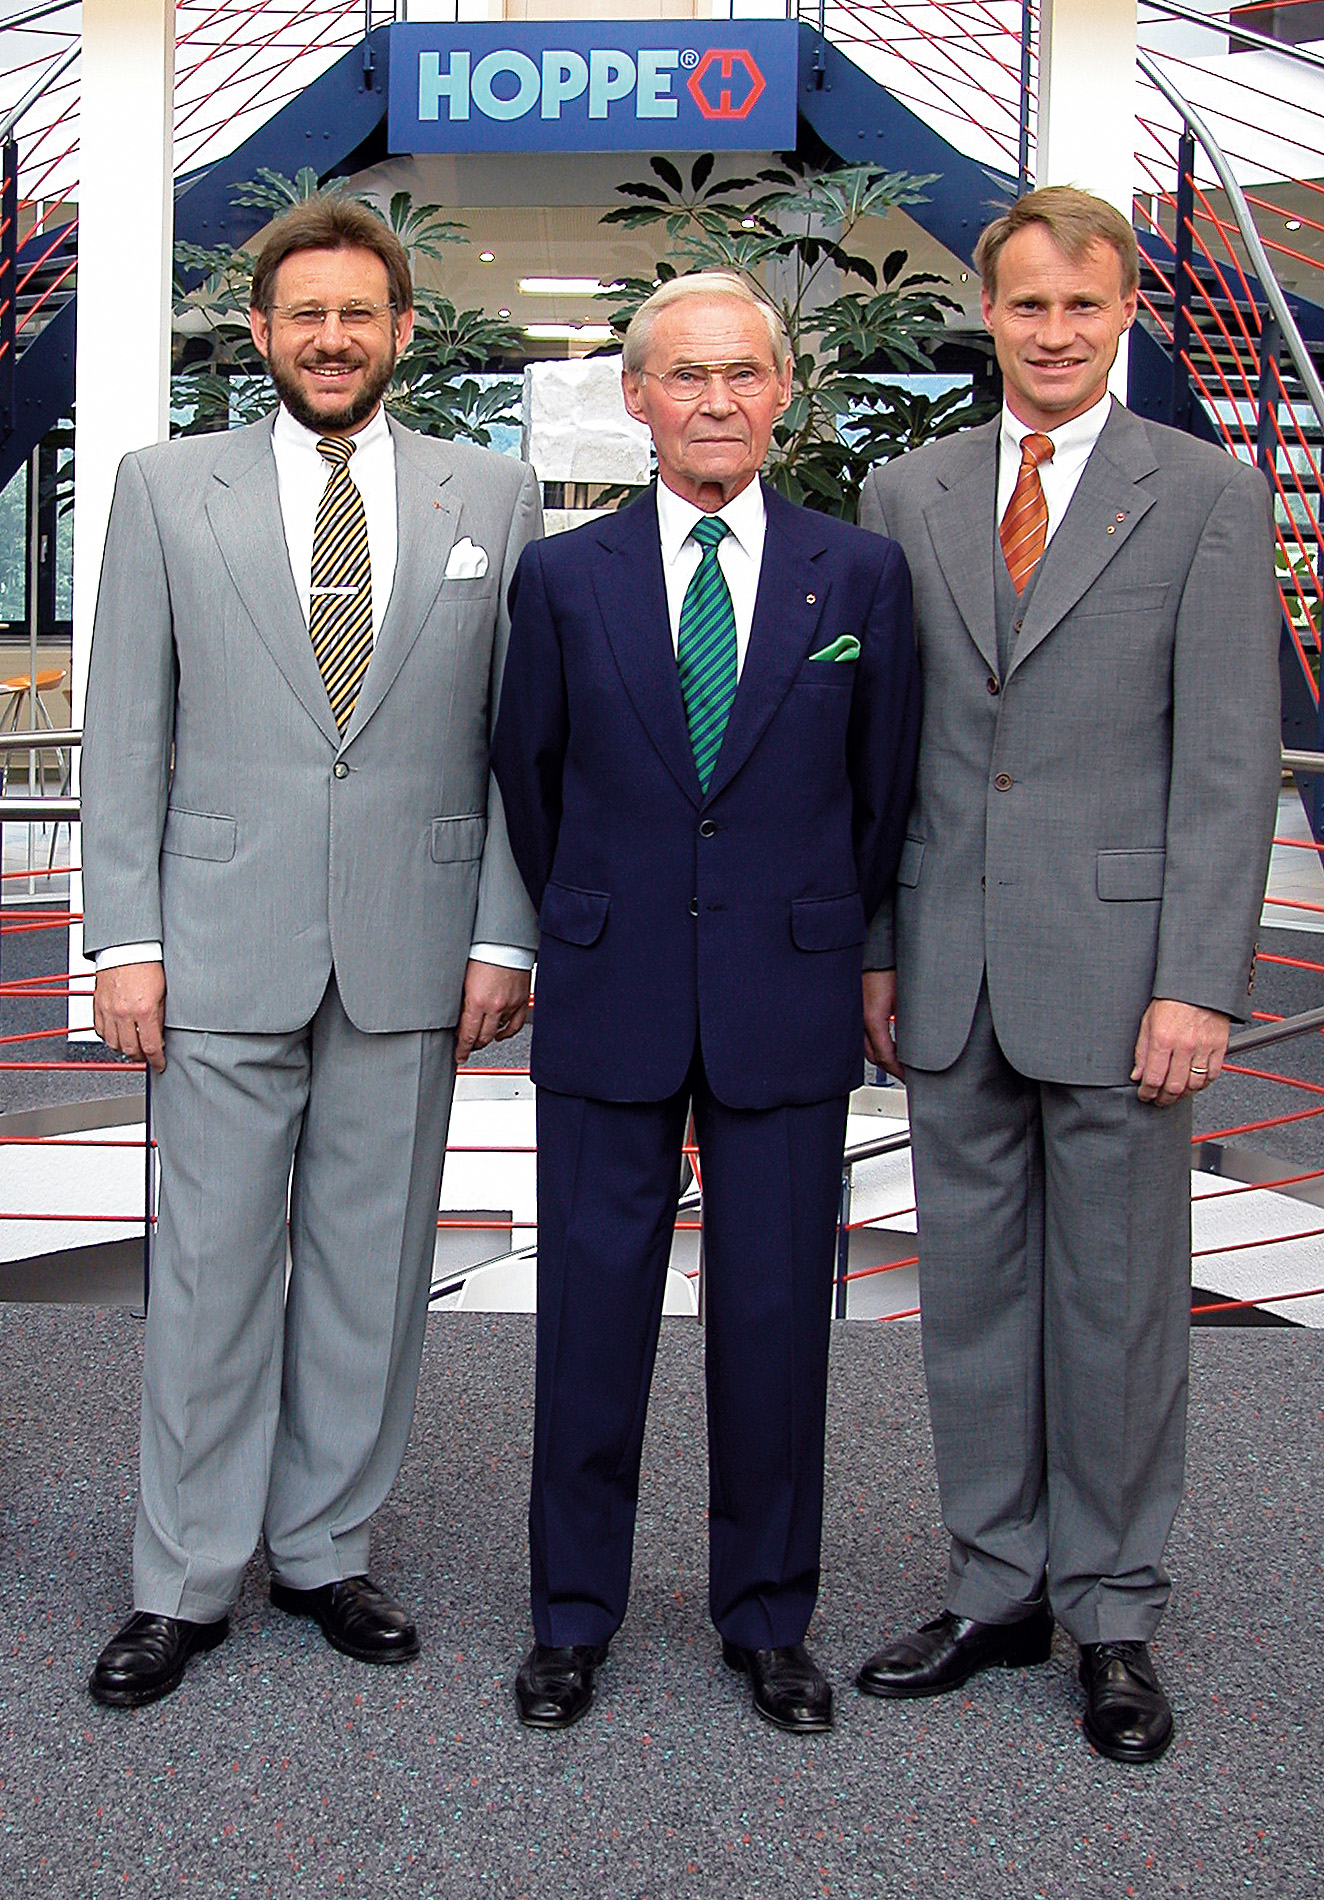 2002: Friedrich Hoppe and his sons Wolf and Christoph Hoppe